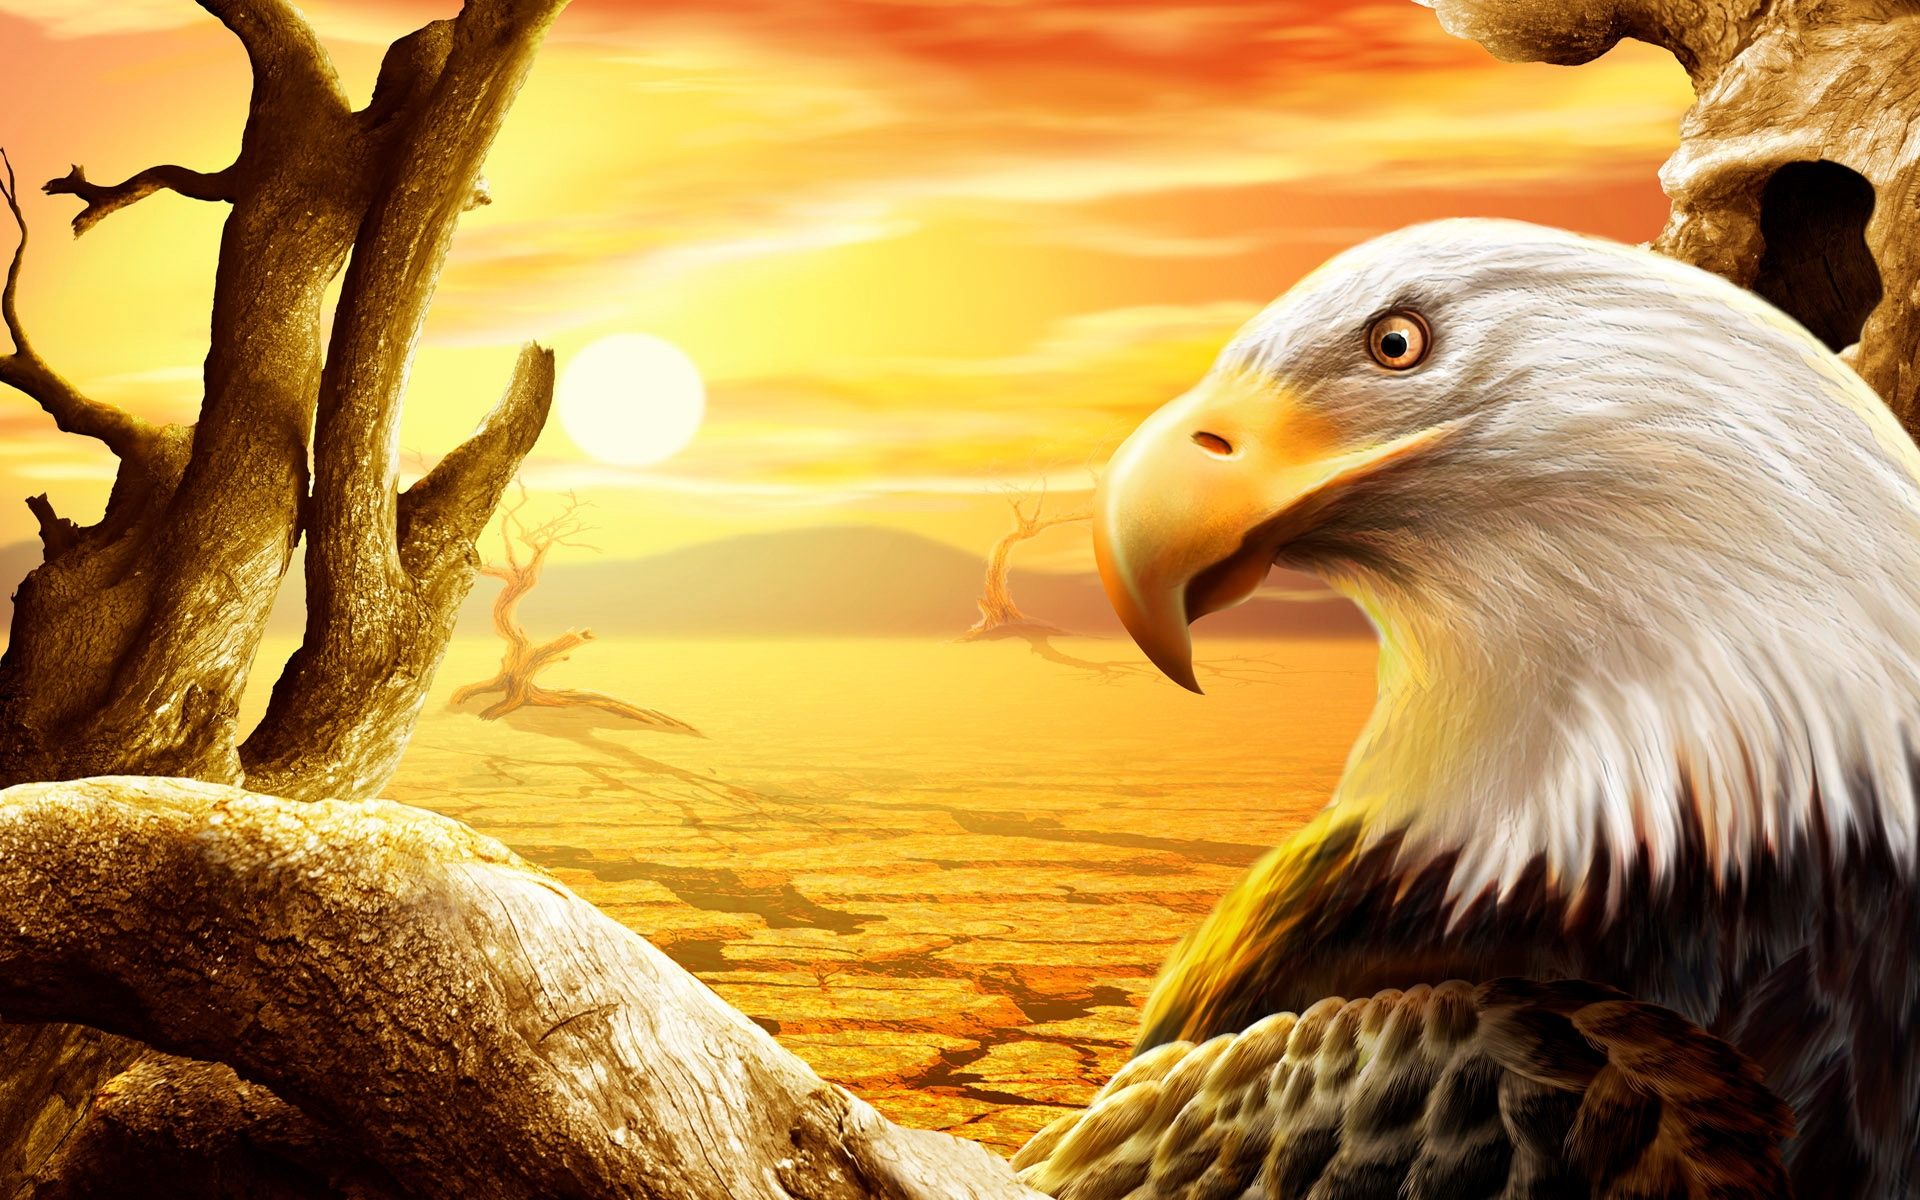 Amazing 3d Wallpapers For Pc Eagle Wallpaper Hd 1600x1000 Wallpaper Teahub Io